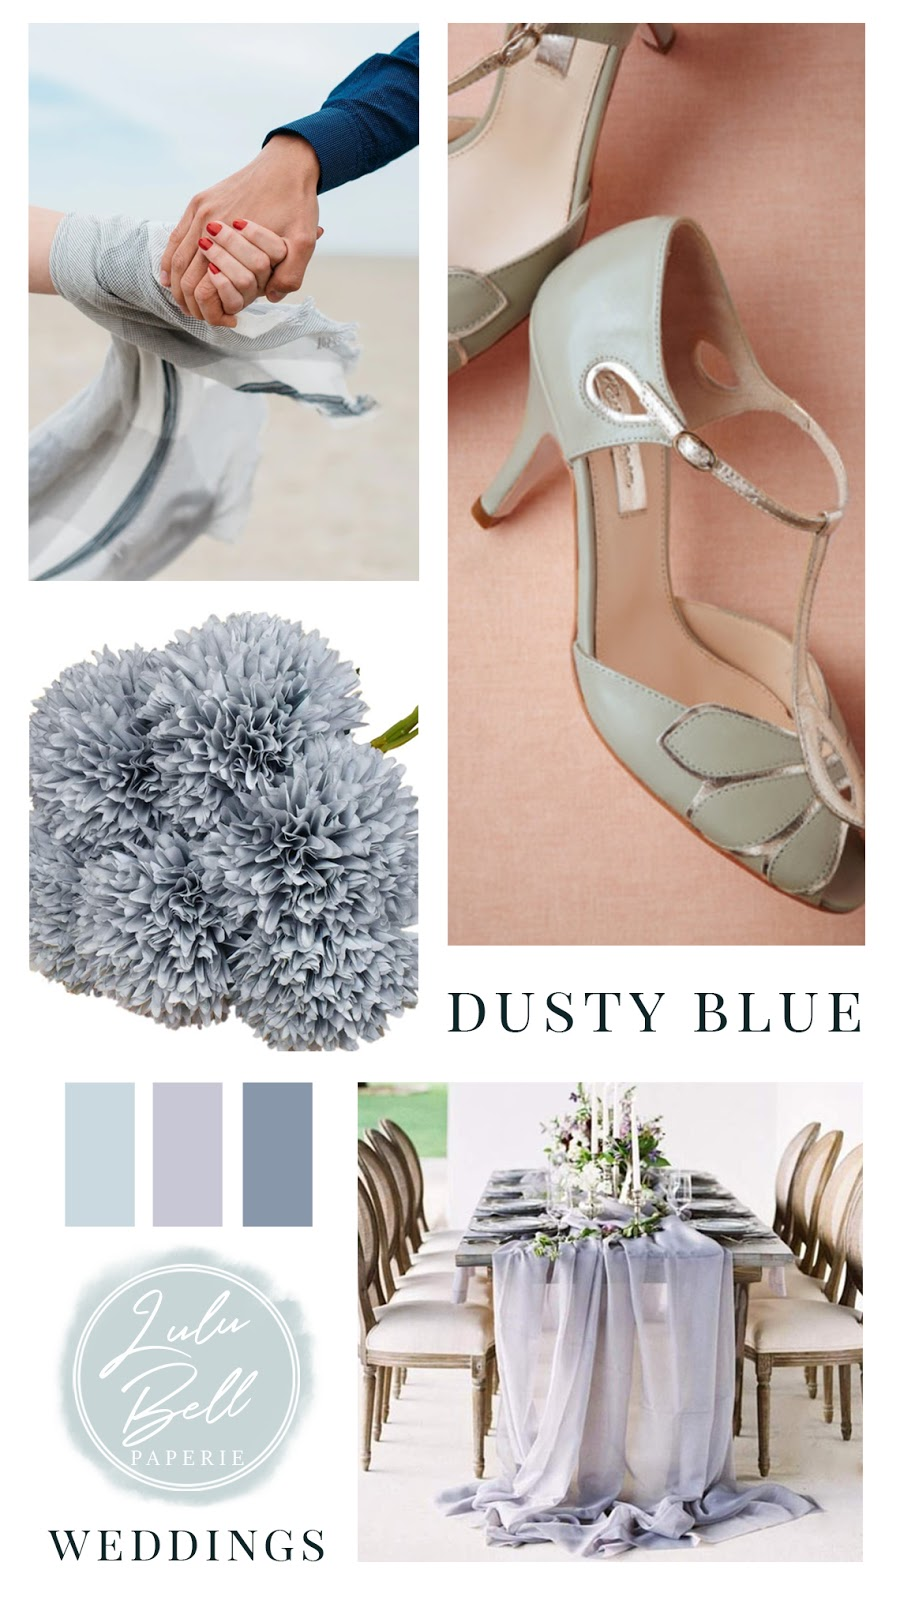 Dusty Blue Mint and Lavender Wedding Color Palette Inspiration